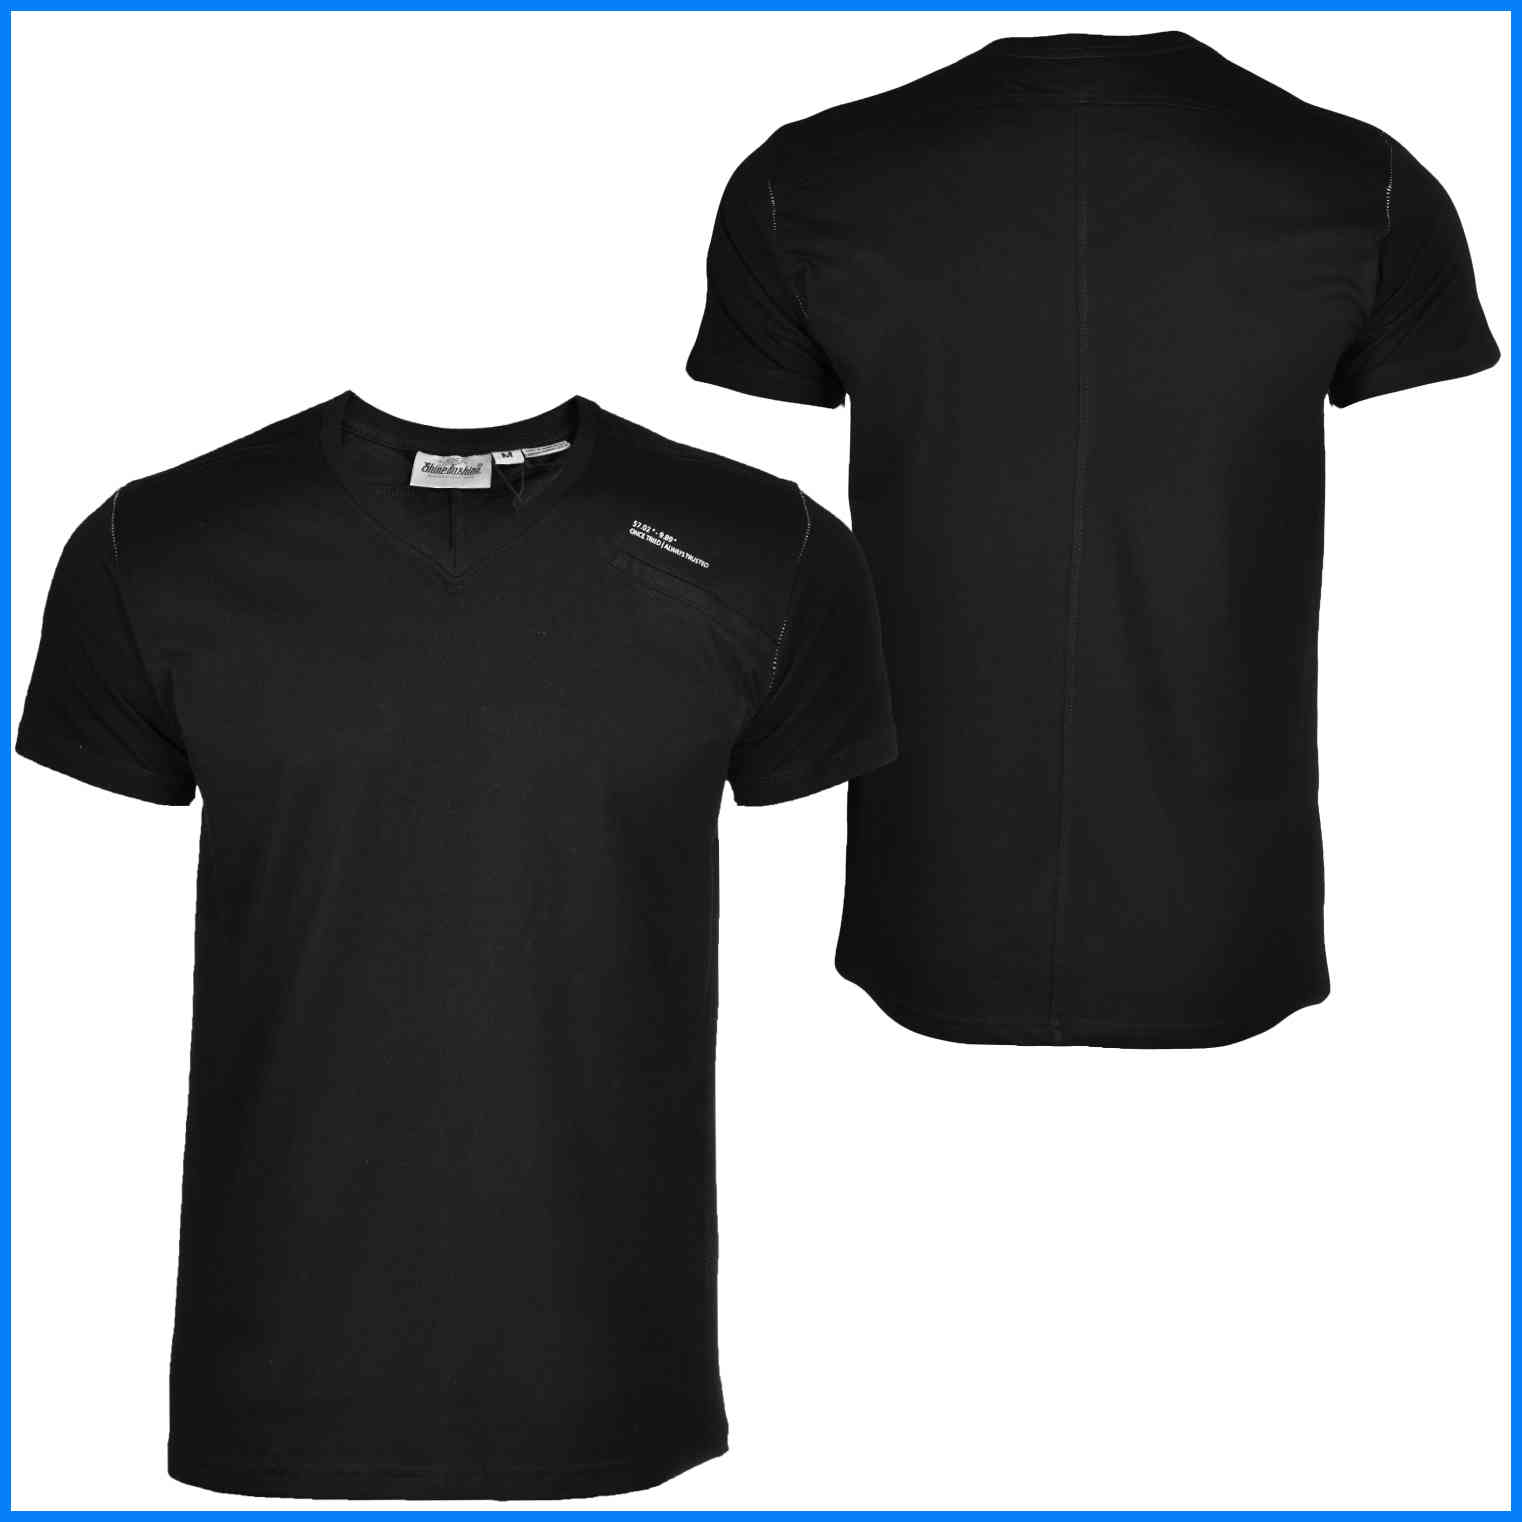 T Shirt Template Clip Art at Clkercom  vector clip art